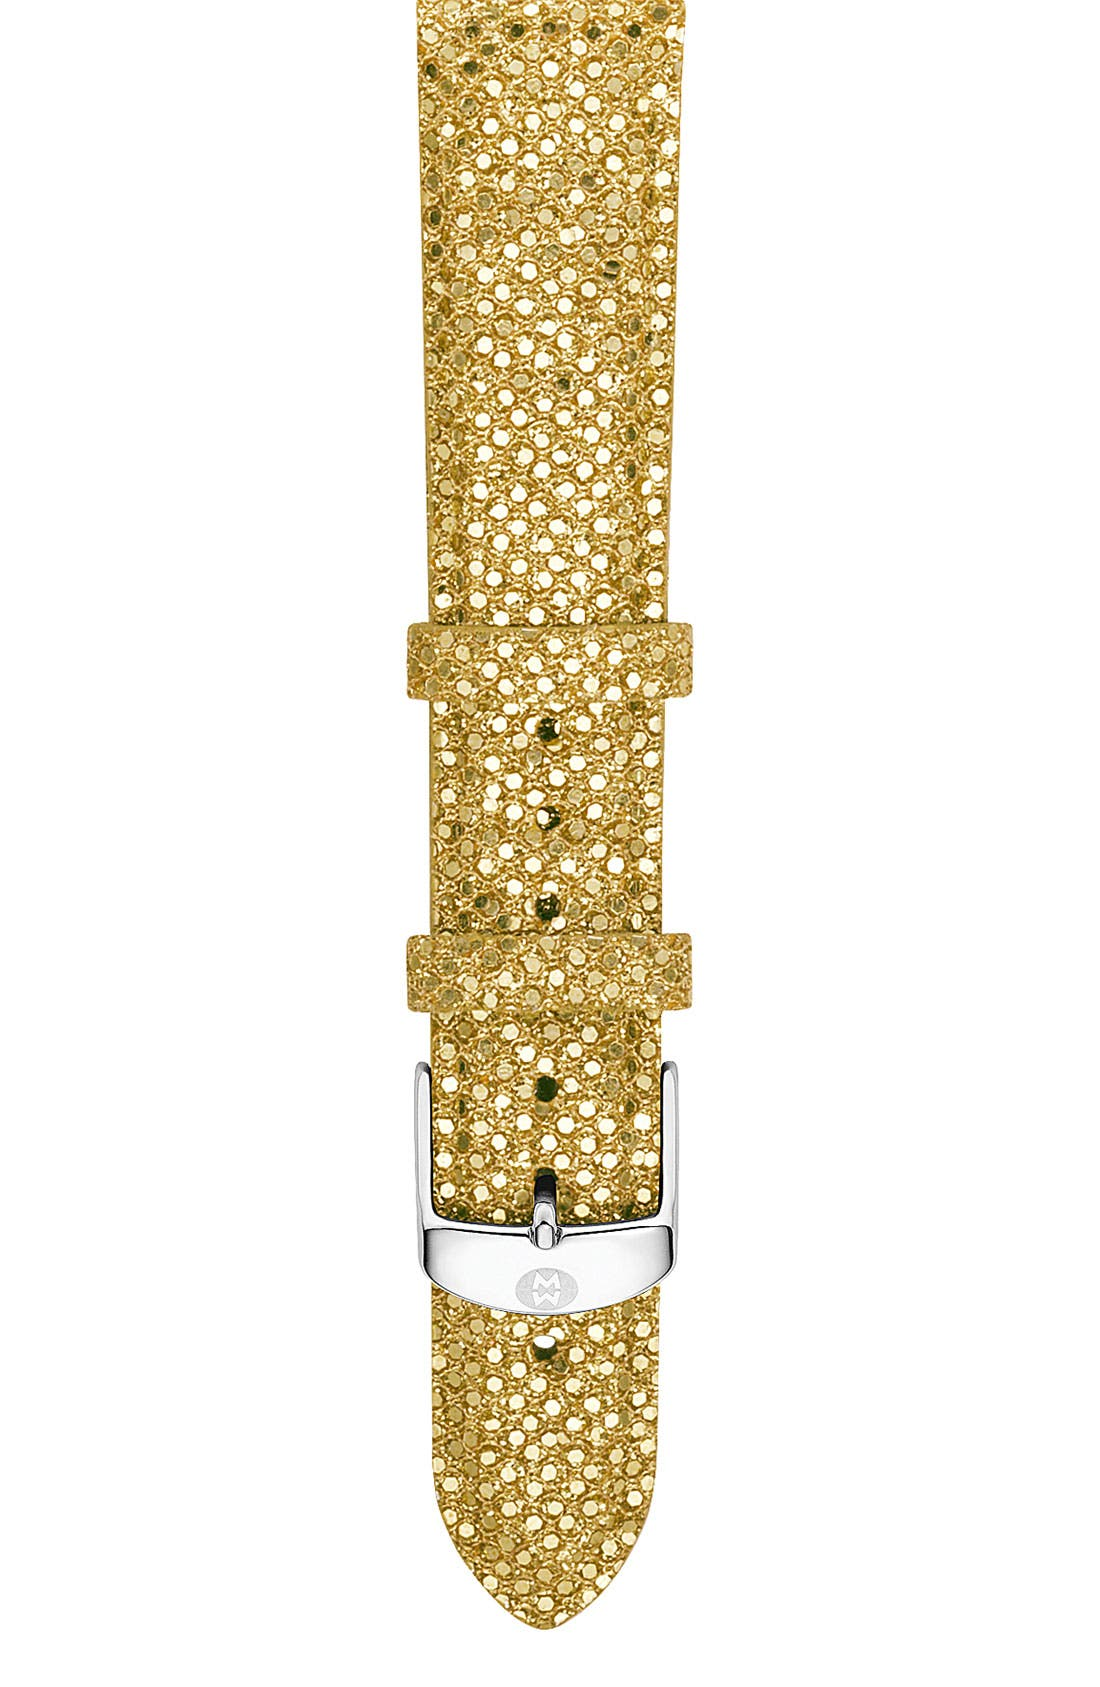 Alternate Image 1 Selected - MICHELE 18mm Sequin Watch Strap